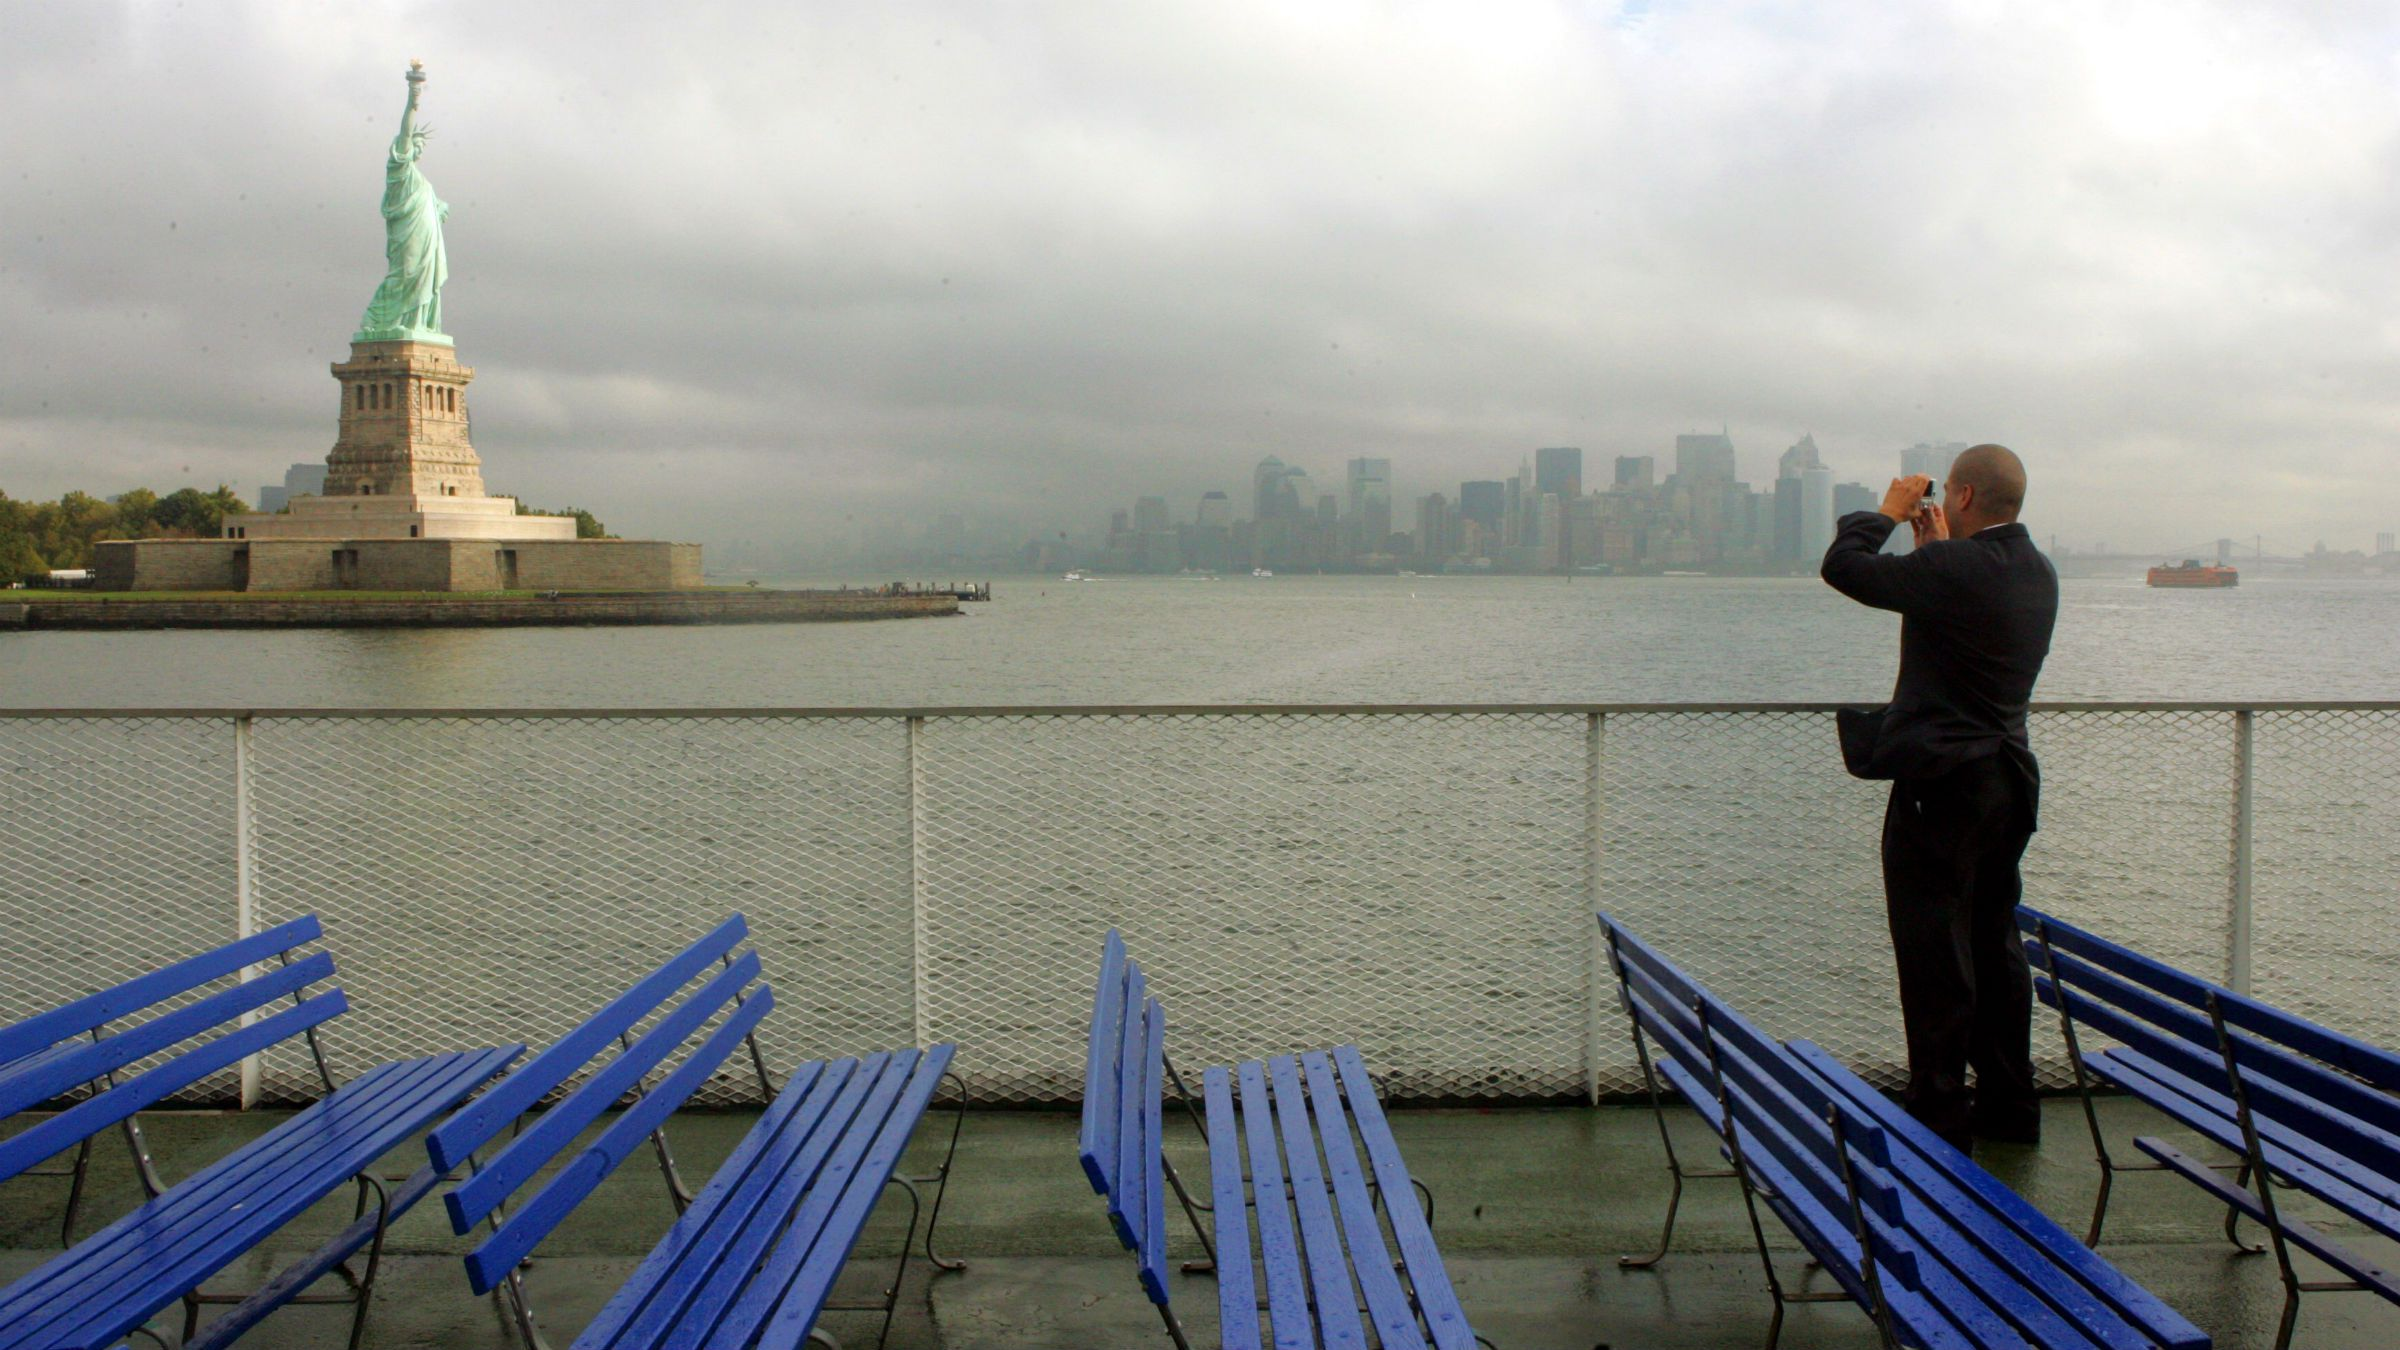 Aldo Abanto, originally from Peru, photographs the Statue of Liberty and the Manhattan skyline while on the way to a ceremony on Ellis Island where he will be taking the Oath of Allegiance and become a U.S. citizen, Sept. 16, 2005 in New York. In celebration of National Citizenship Day, 105 New York residents from 45 countries will take the Oath of Allegiance and become U.S. citizens during a special ceremony at the Registry Room on Ellis Island. (AP Photo/Mary Altaffer)